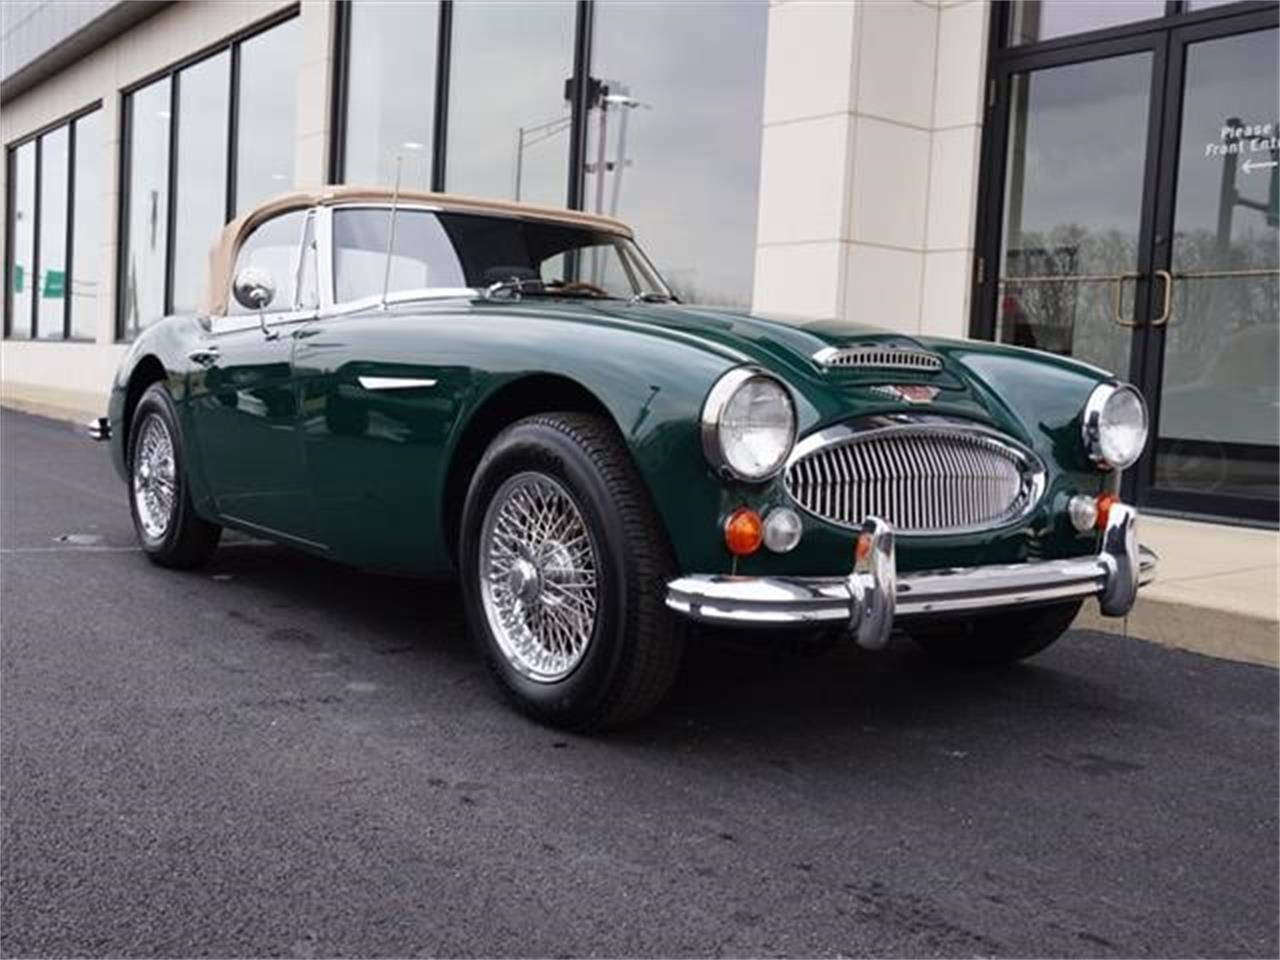 Large Picture of Classic '67 Austin-Healey 3000 Mark III located in Ohio - $59,999.00 - LRXT